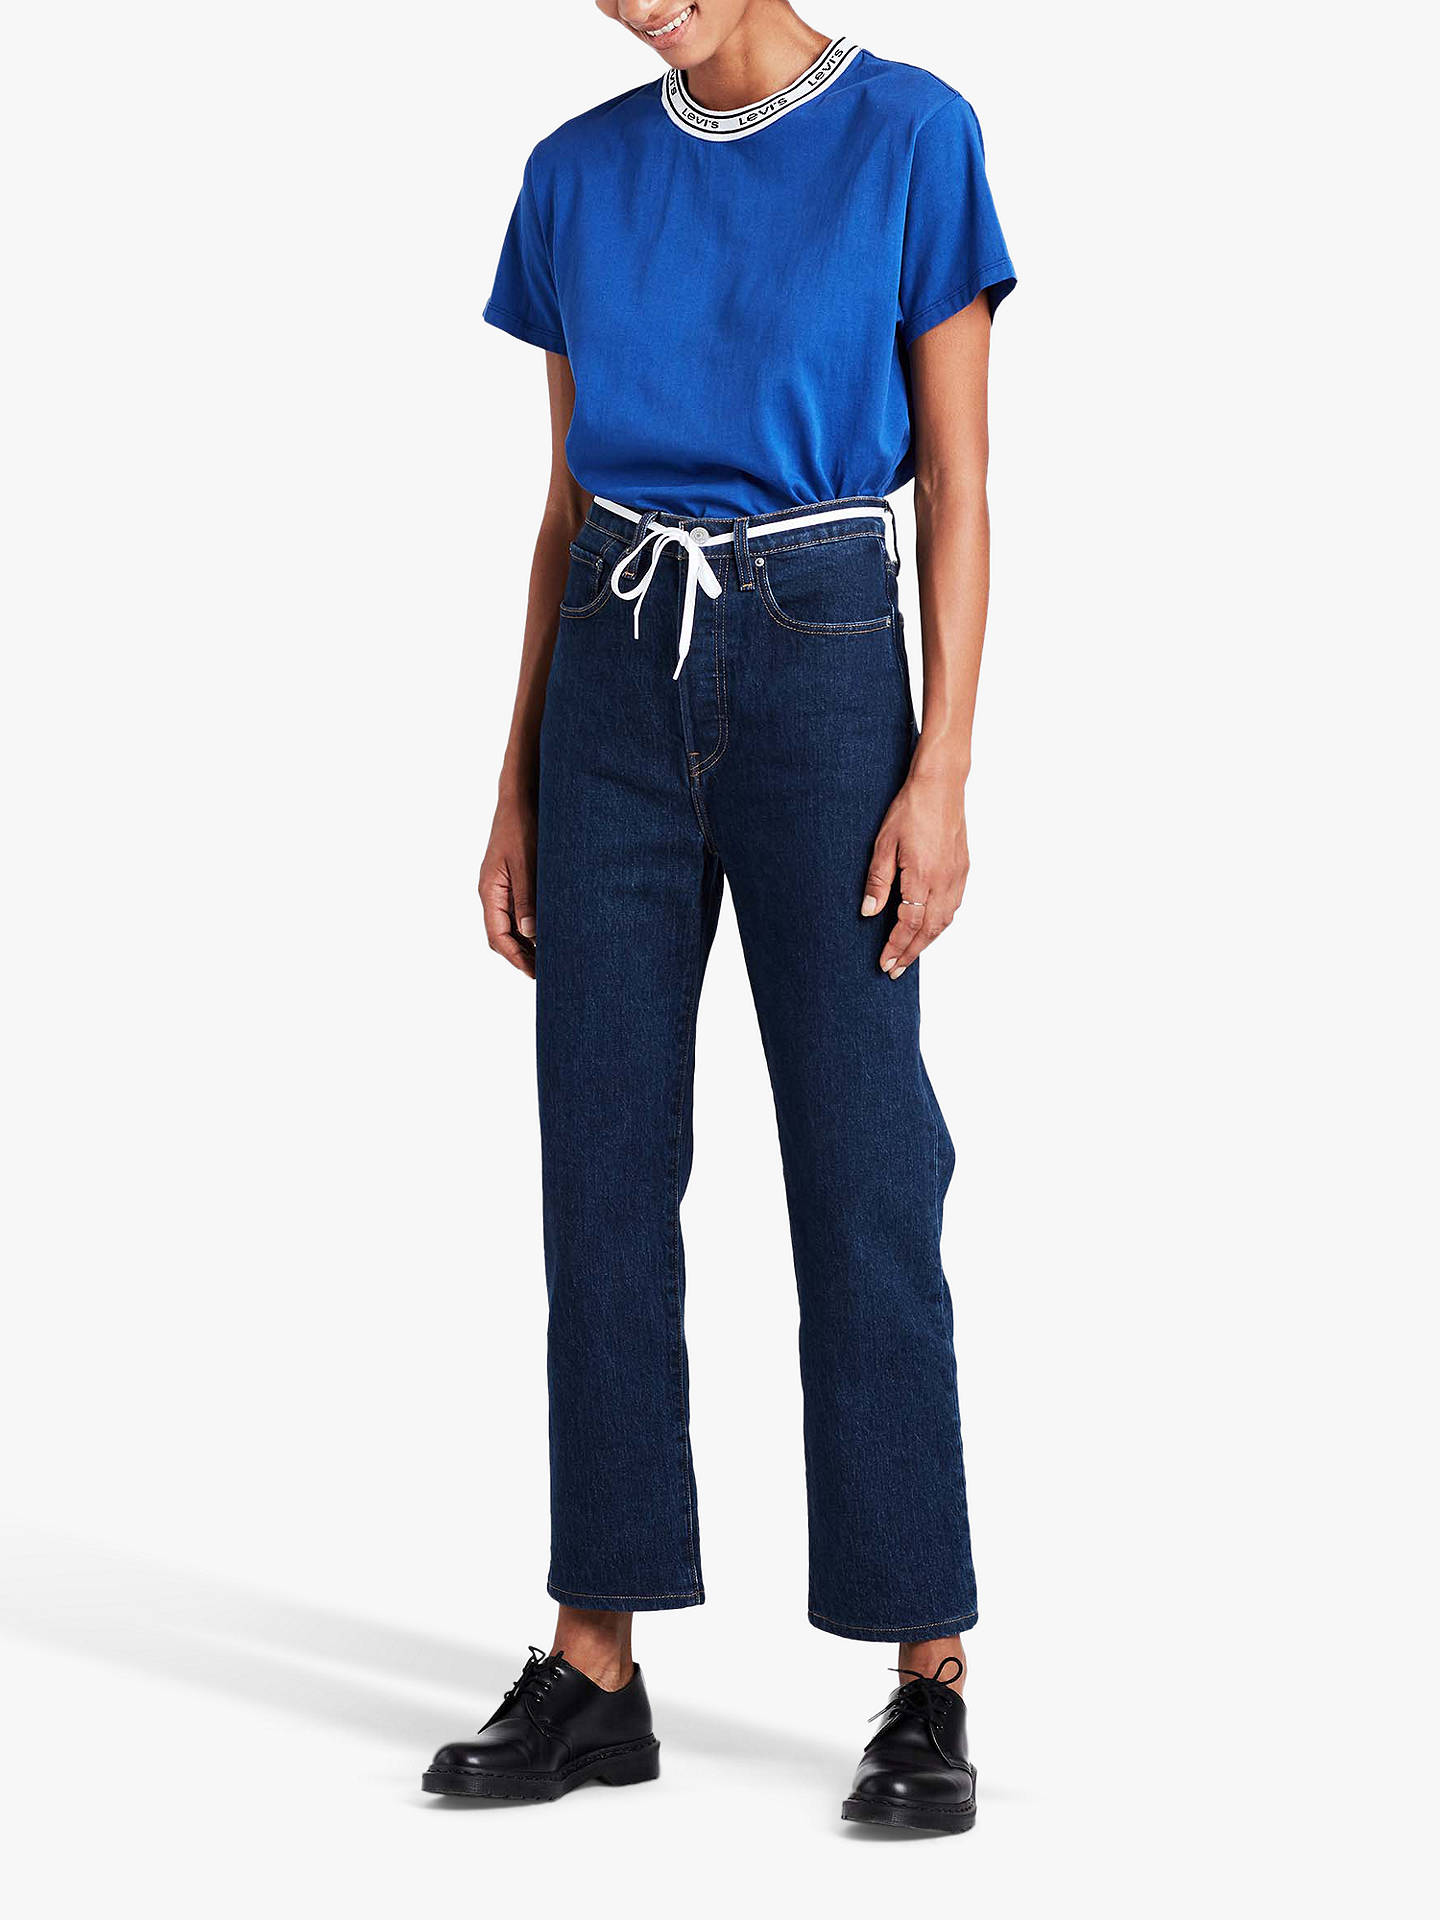 Buy Levi's Ribcage Straight Ankle Jeans, Life's Work, W27/L27 Online at johnlewis.com